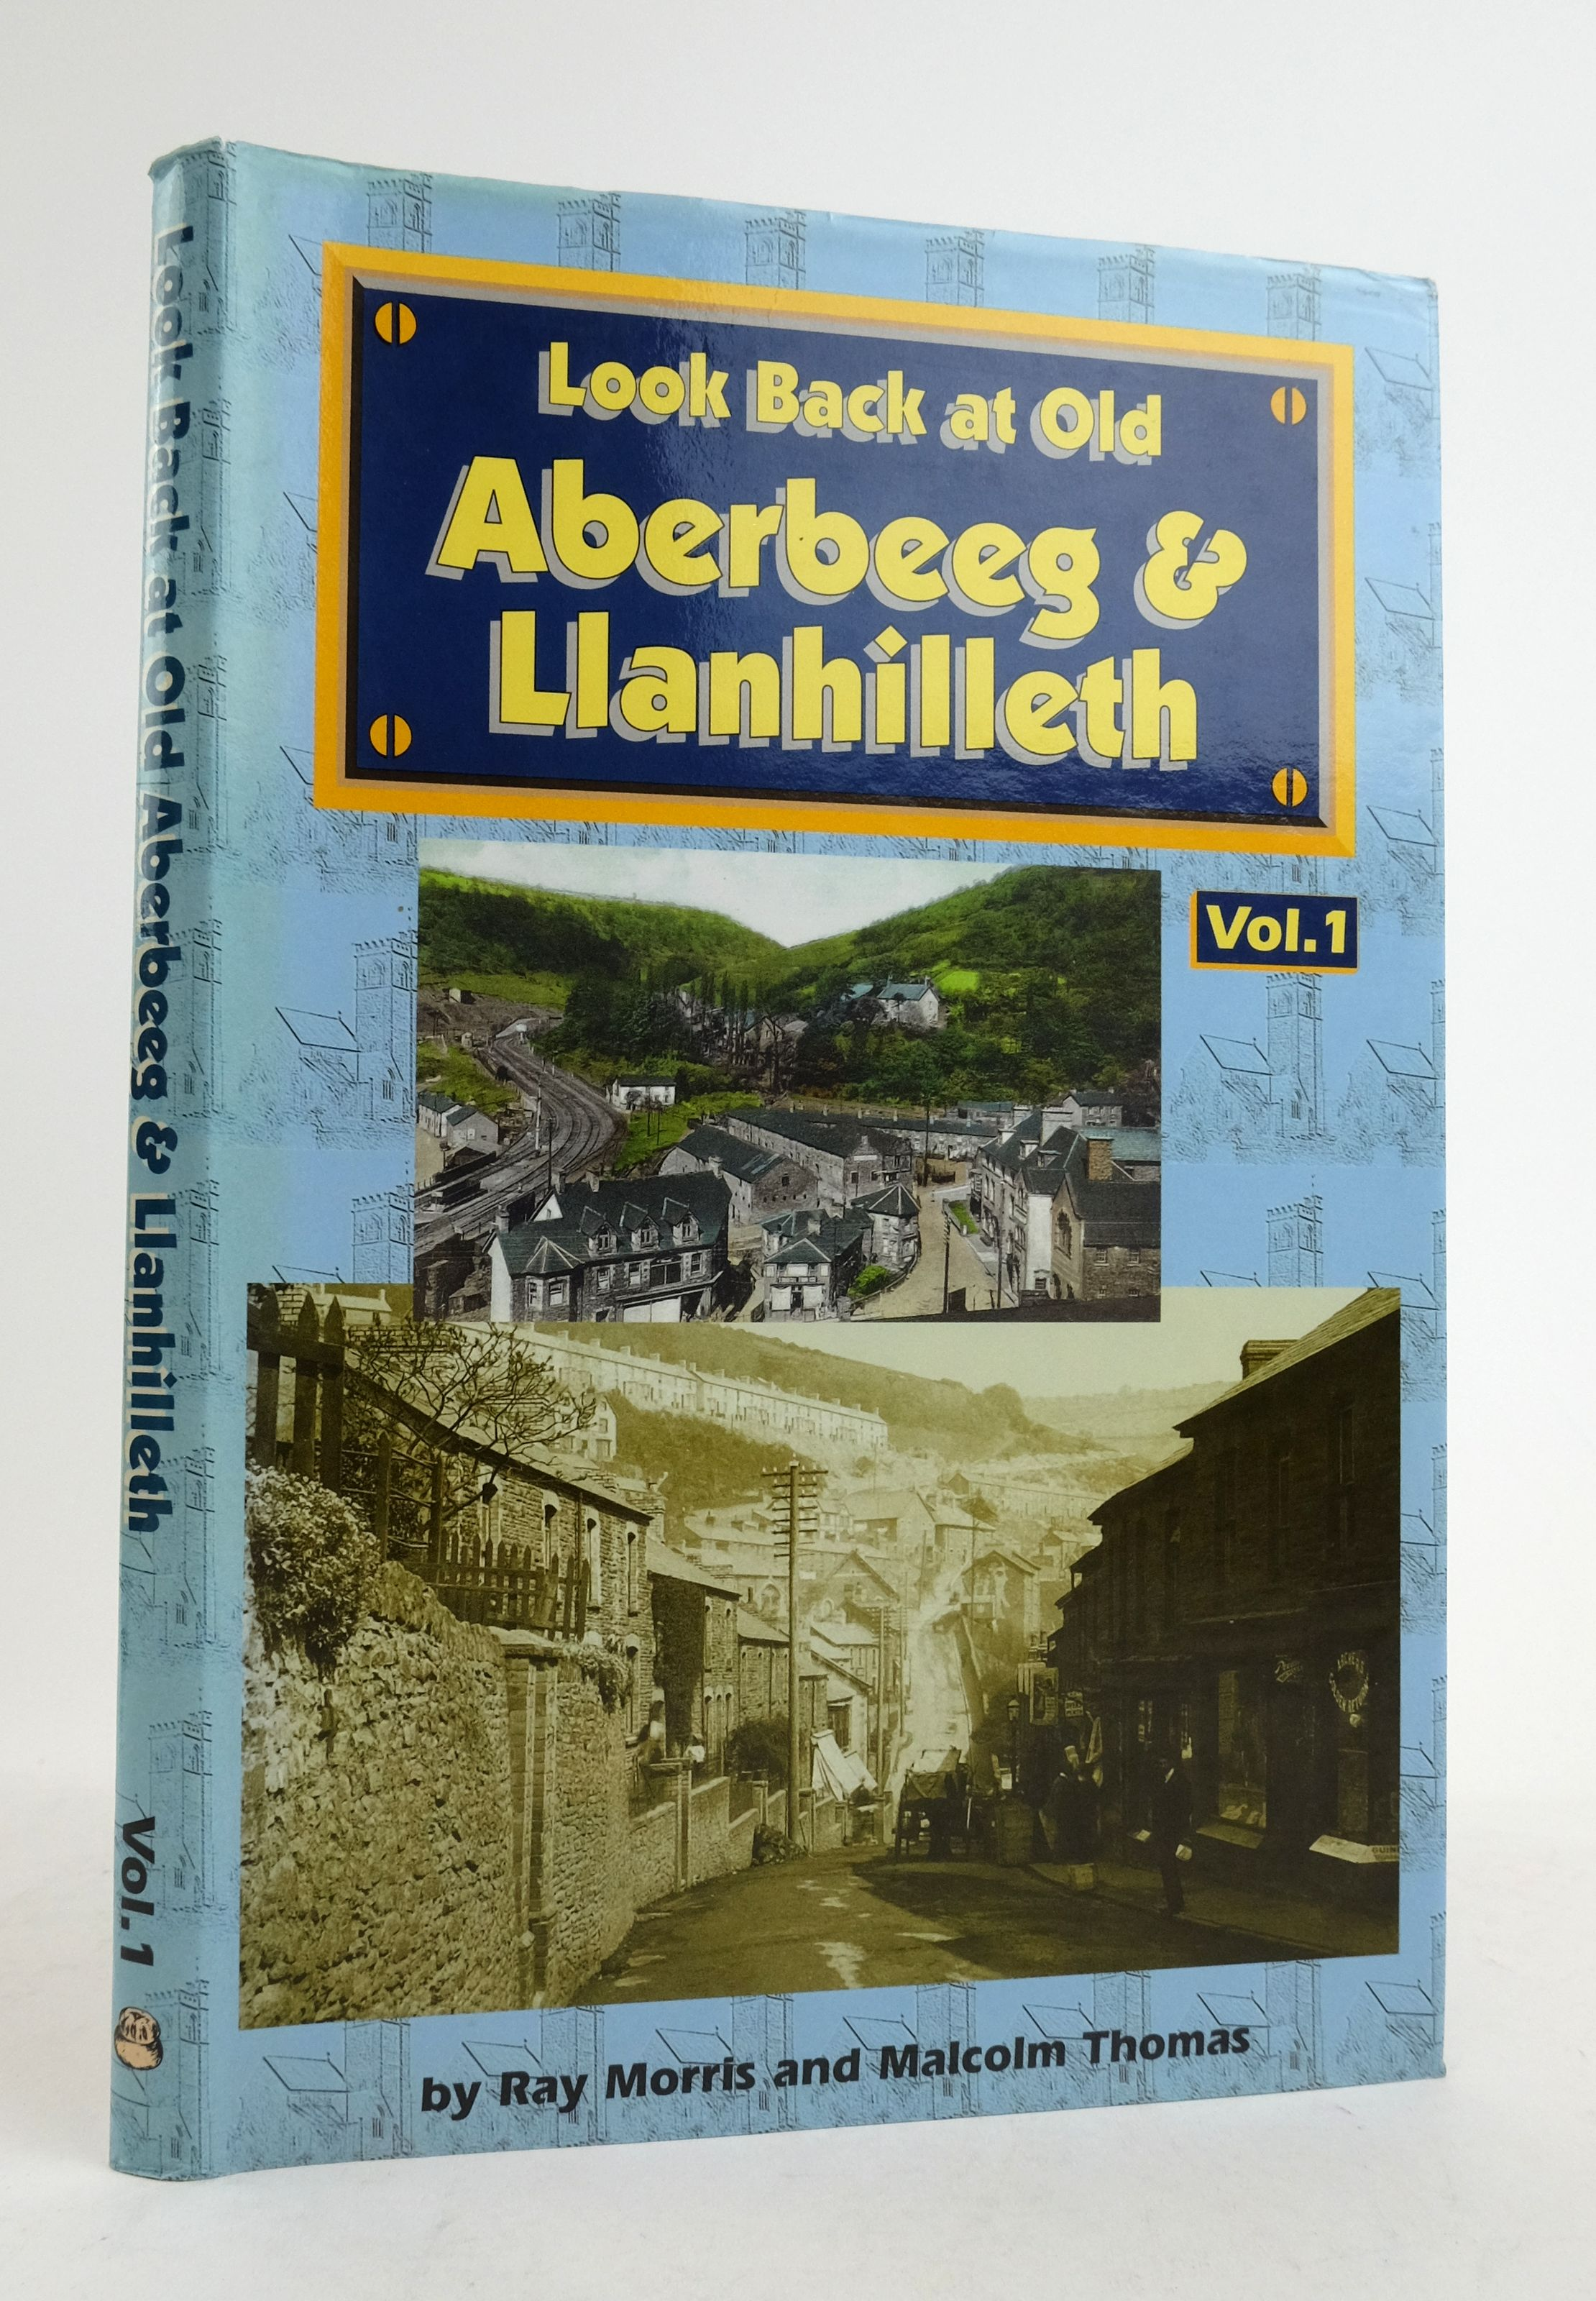 Photo of LOOK BACK AT OLD ABERBEEG & LLANHILLETH VOLUME 1- Stock Number: 1822465